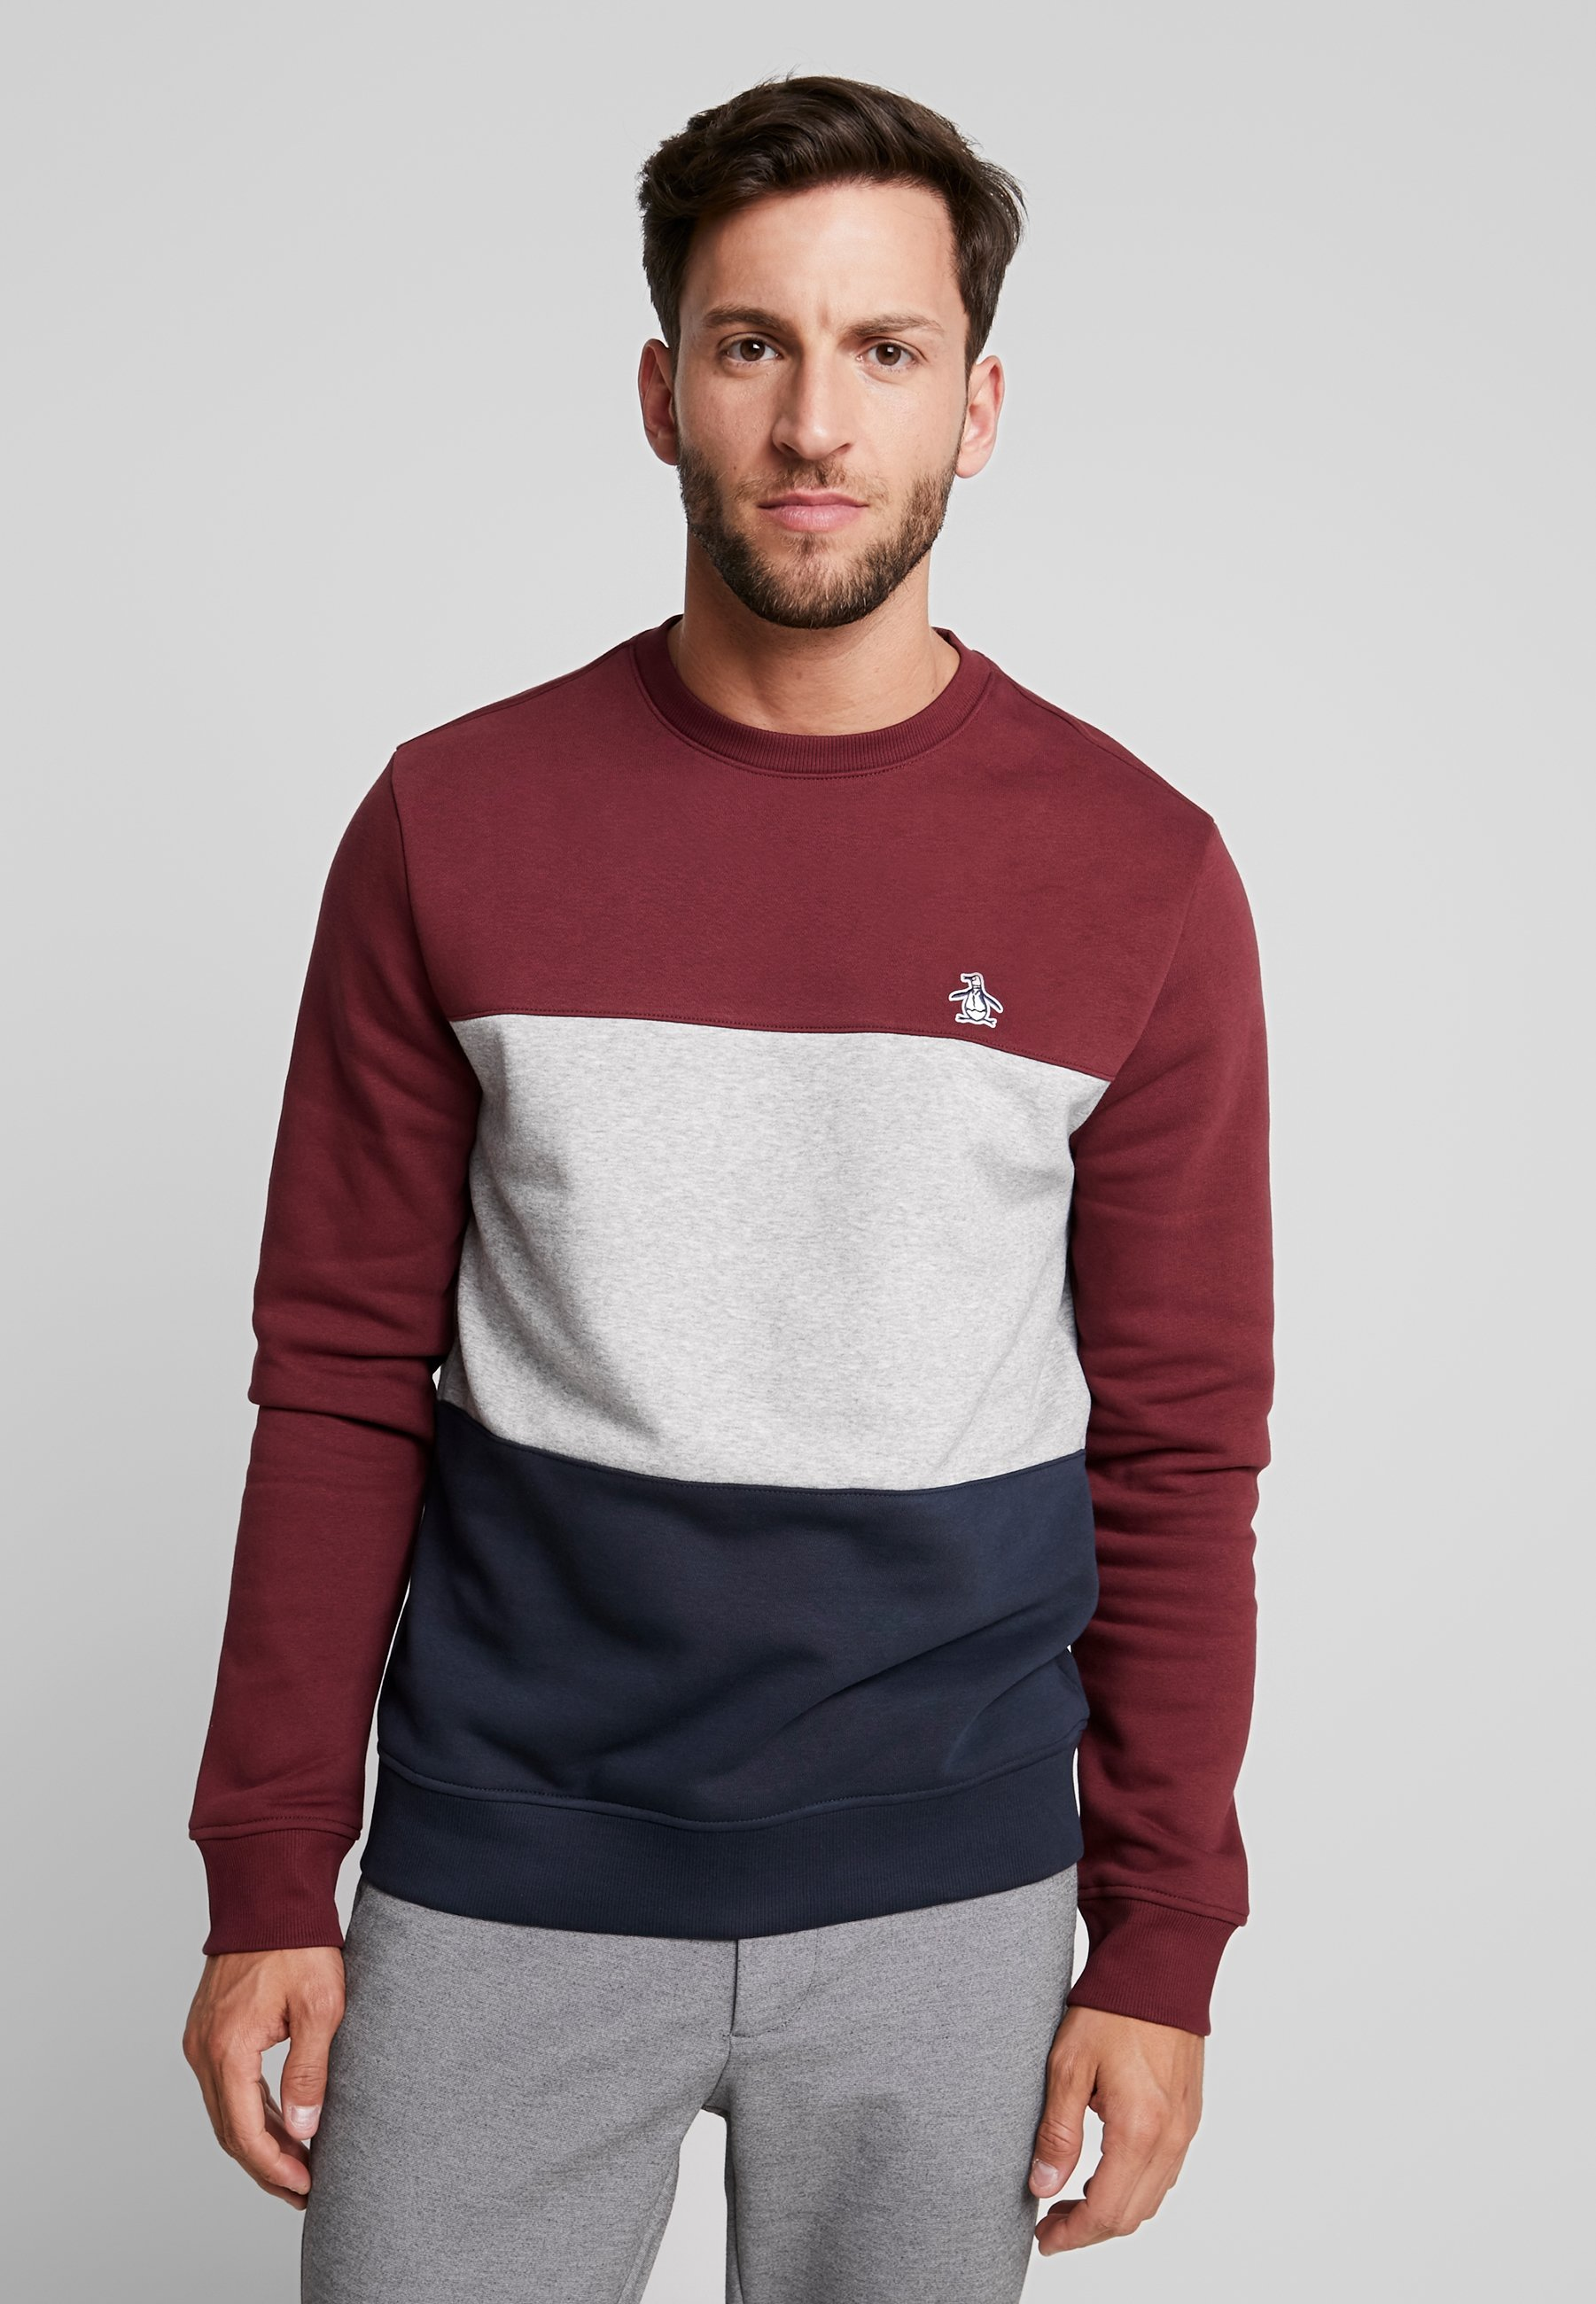 Colorblock Penguin CrewSweatshirt Original Port Tawny MSzUpqV